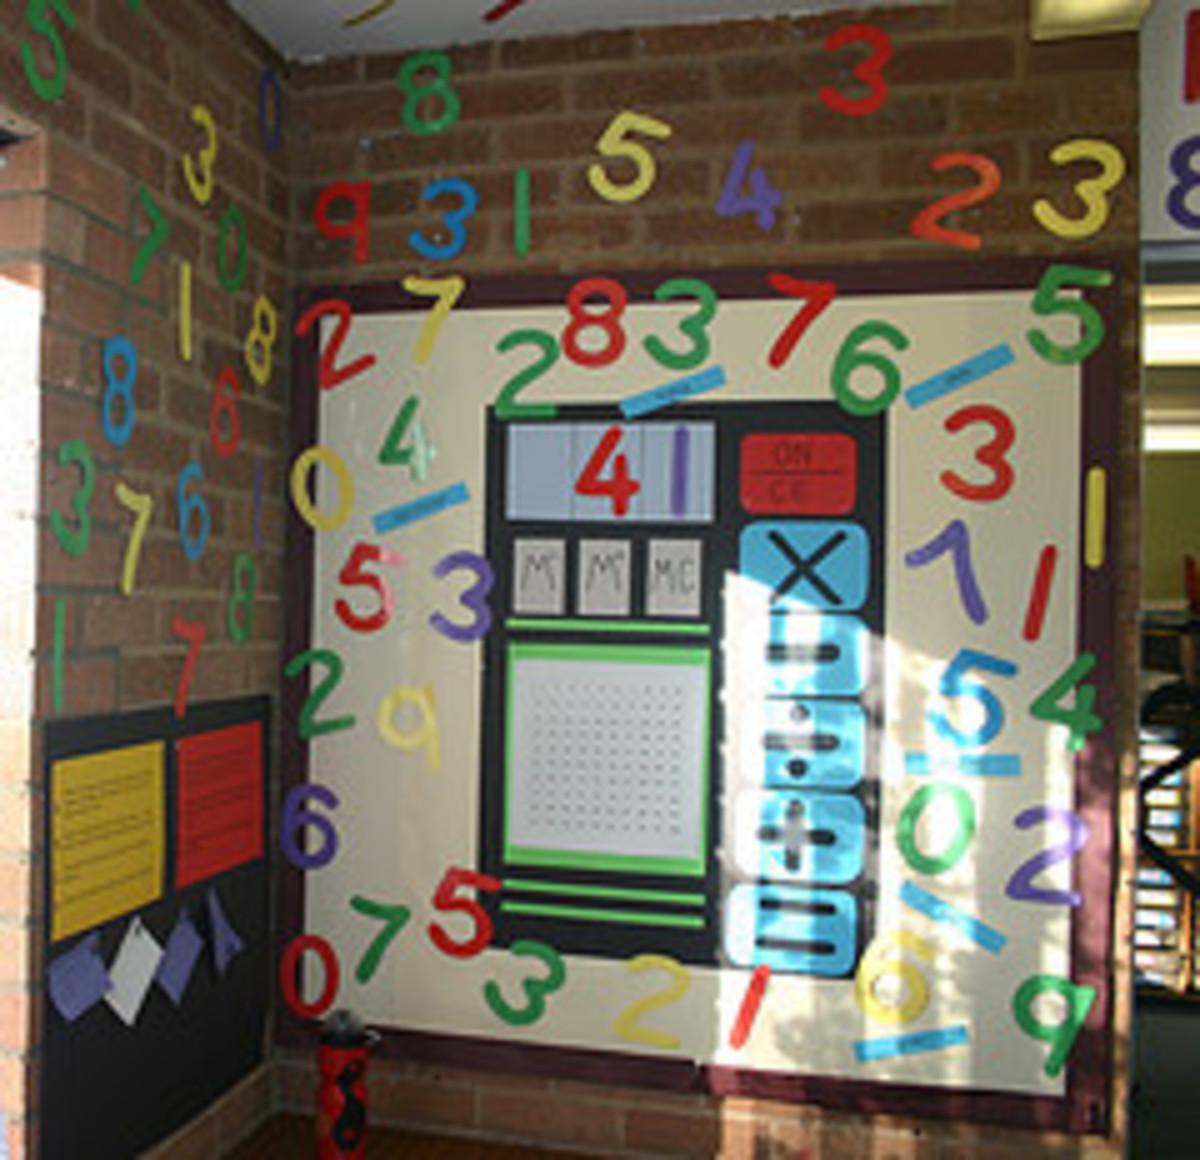 Colourful number display by Katz41 at flckr